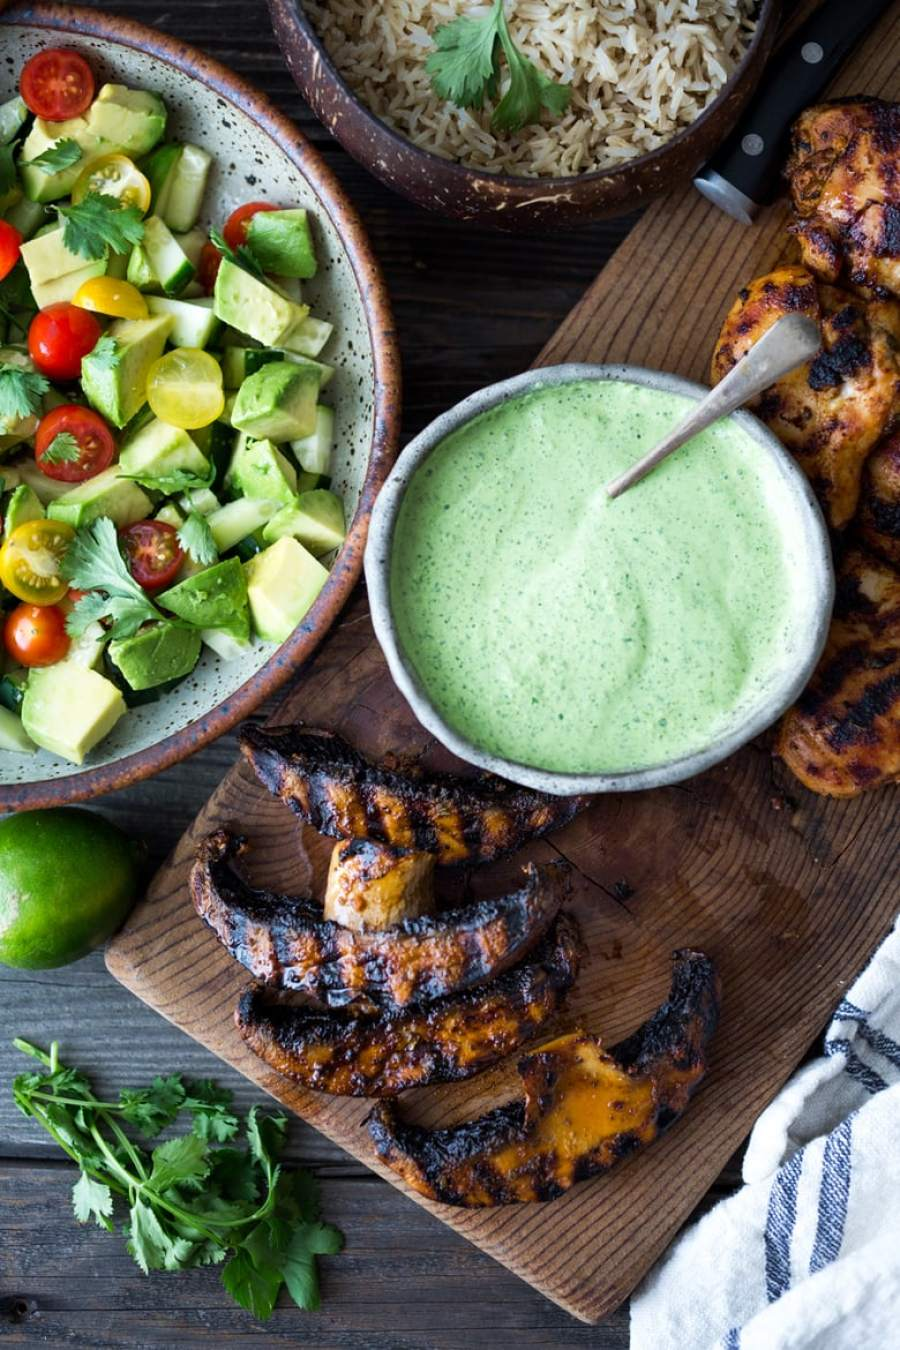 Simple, delicious Grilled Peruvian Portobellos with Green Sauce and an Avocado Tomato Cucumber Salad. Can be made in 40 minutes- perfect for weeknights!